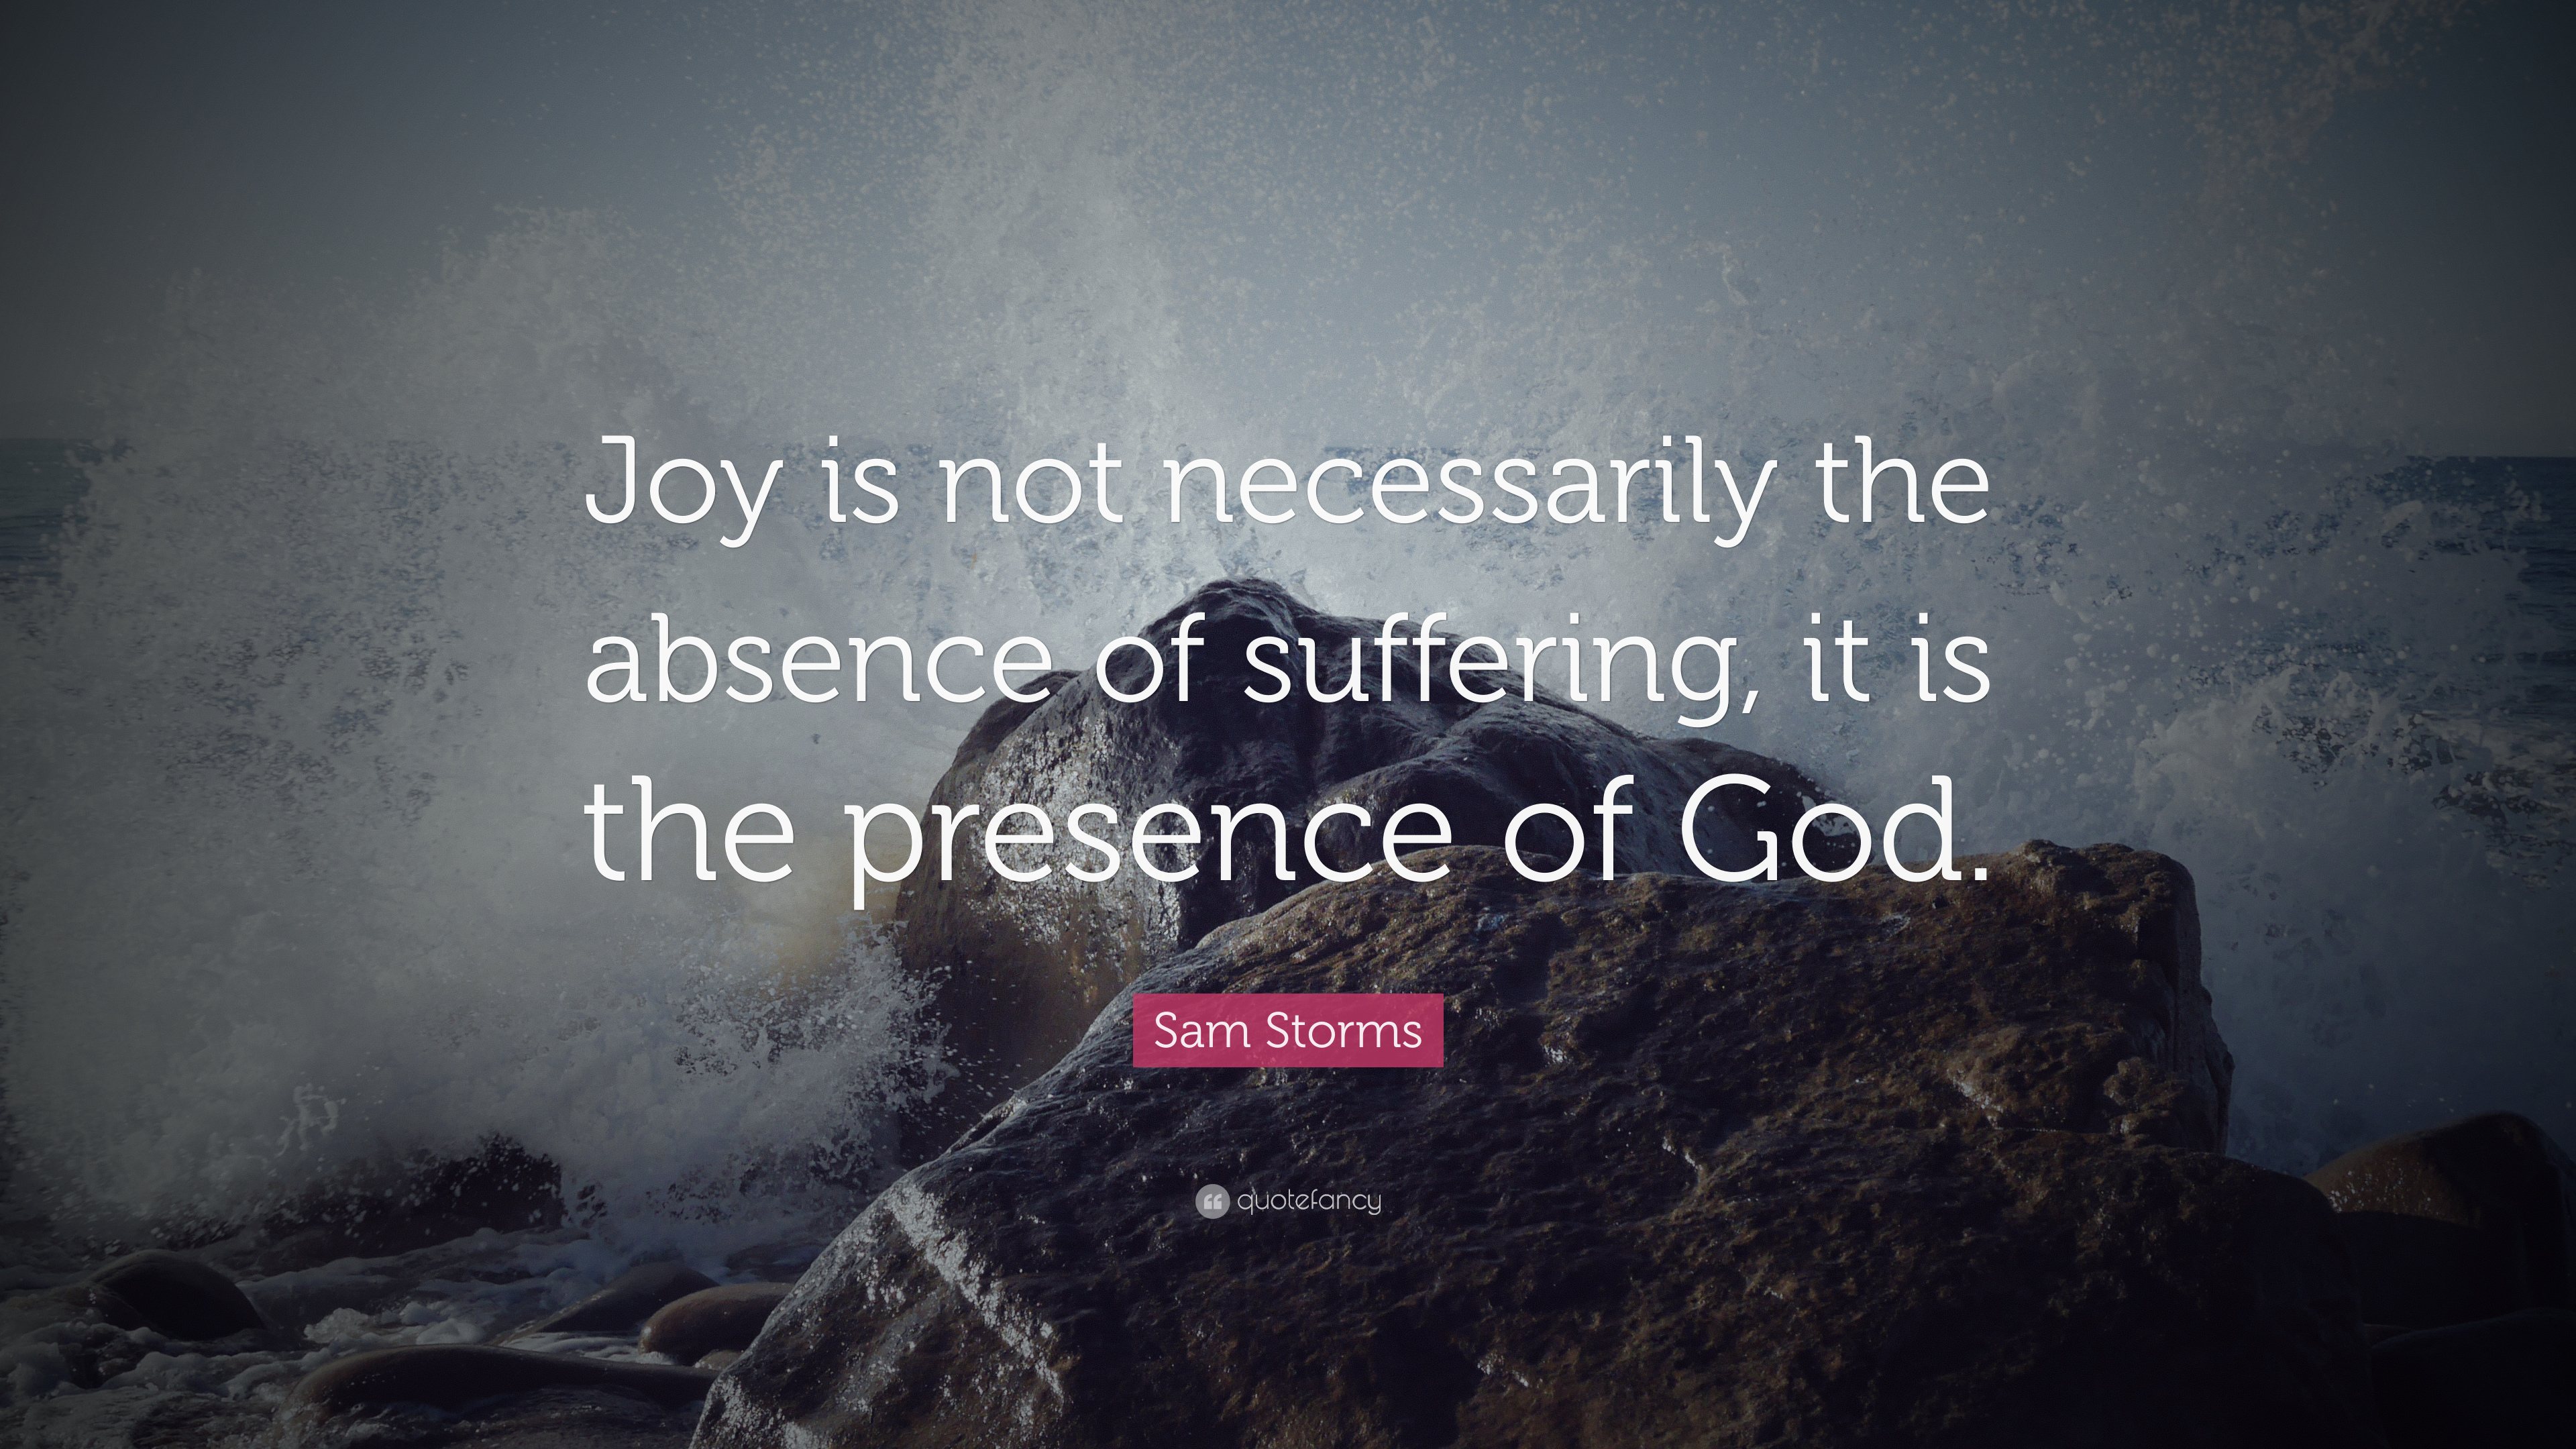 Sam Storms Quote Joy Is Not Necessarily The Absence Of Suffering It Is The Presence Of God